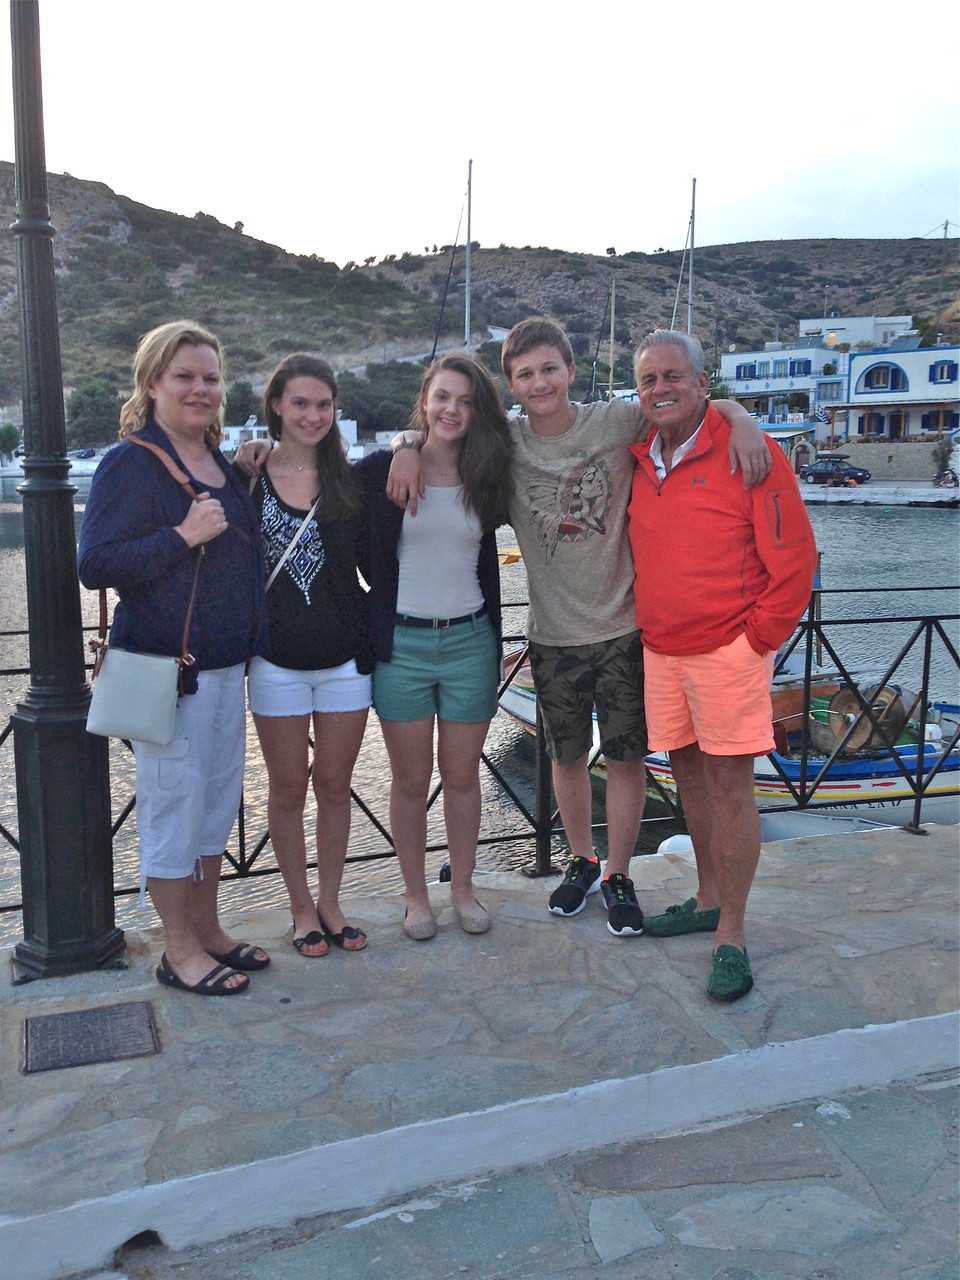 Celeste, Ellie, Kate, Jack, & Stuart Sr. Greece, 2014